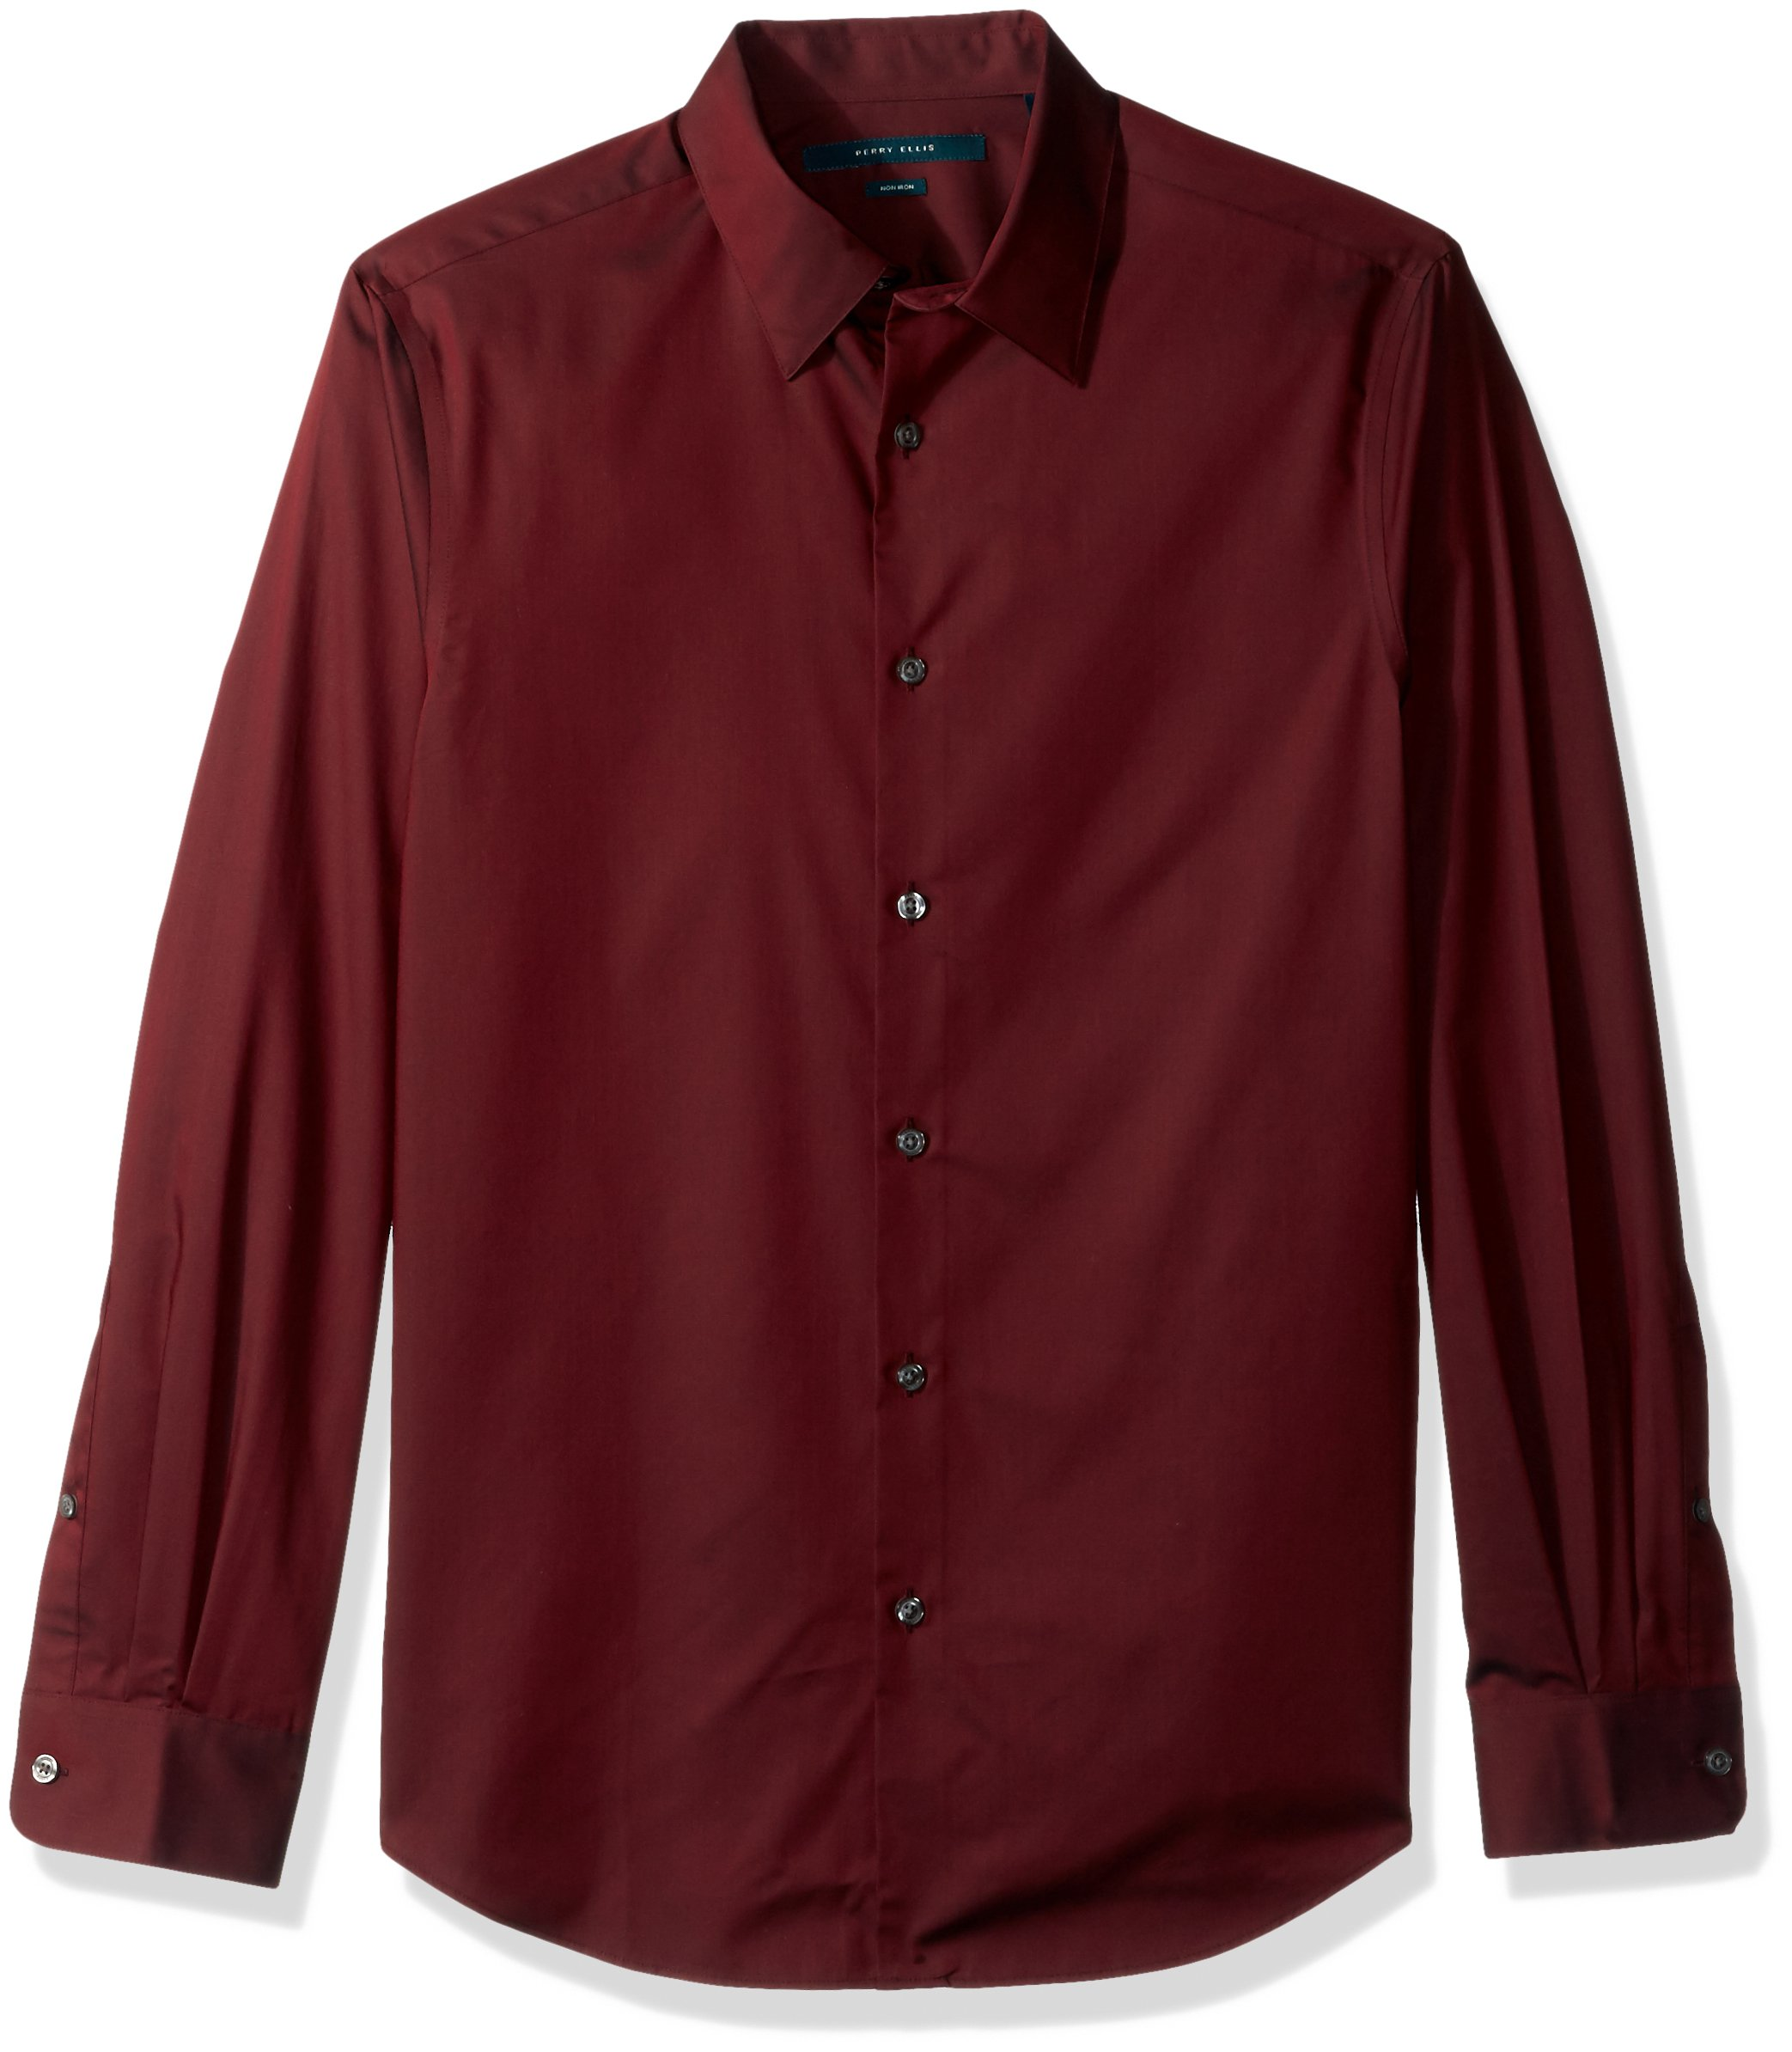 Perry Ellis Men's Travel Luxe Solid Non-Iron Twill Shirt, Burnt Russet-4CFW4000, Small